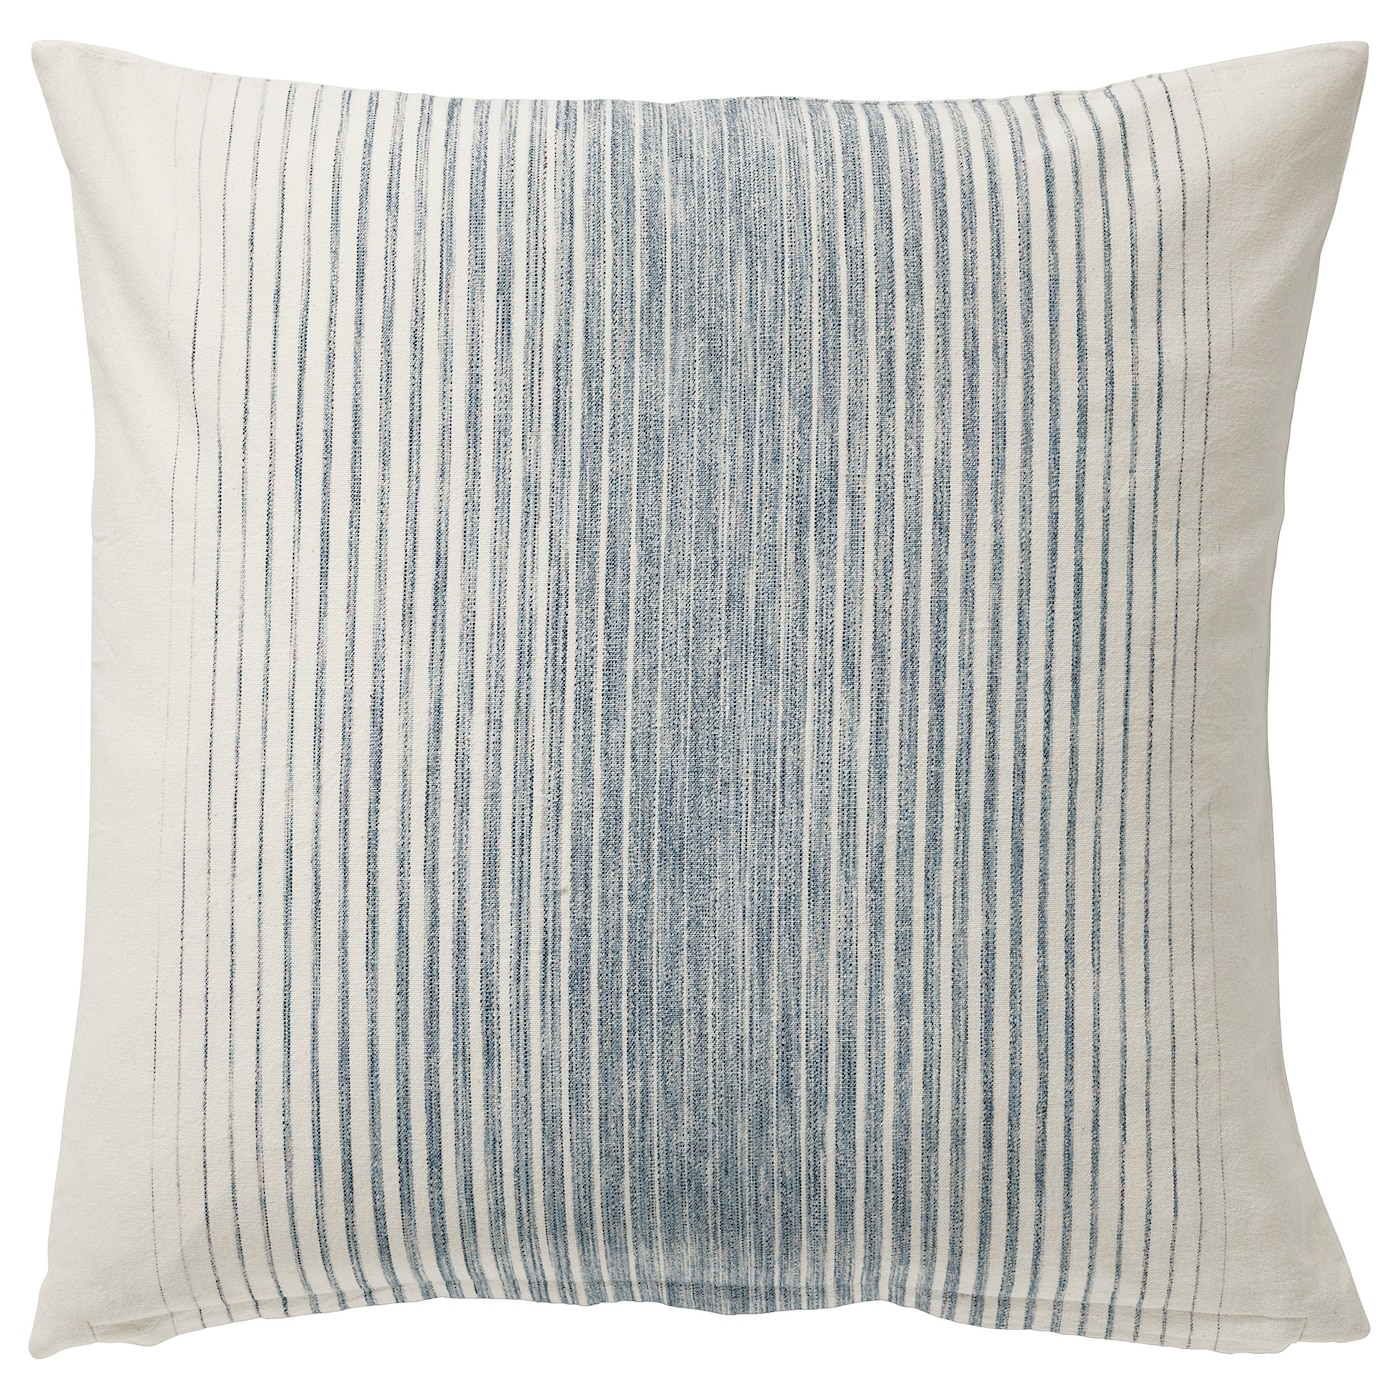 IKEA ISPIGG cushion cover Colours are retained wash after wash thanks to the yarn-dyed cotton.